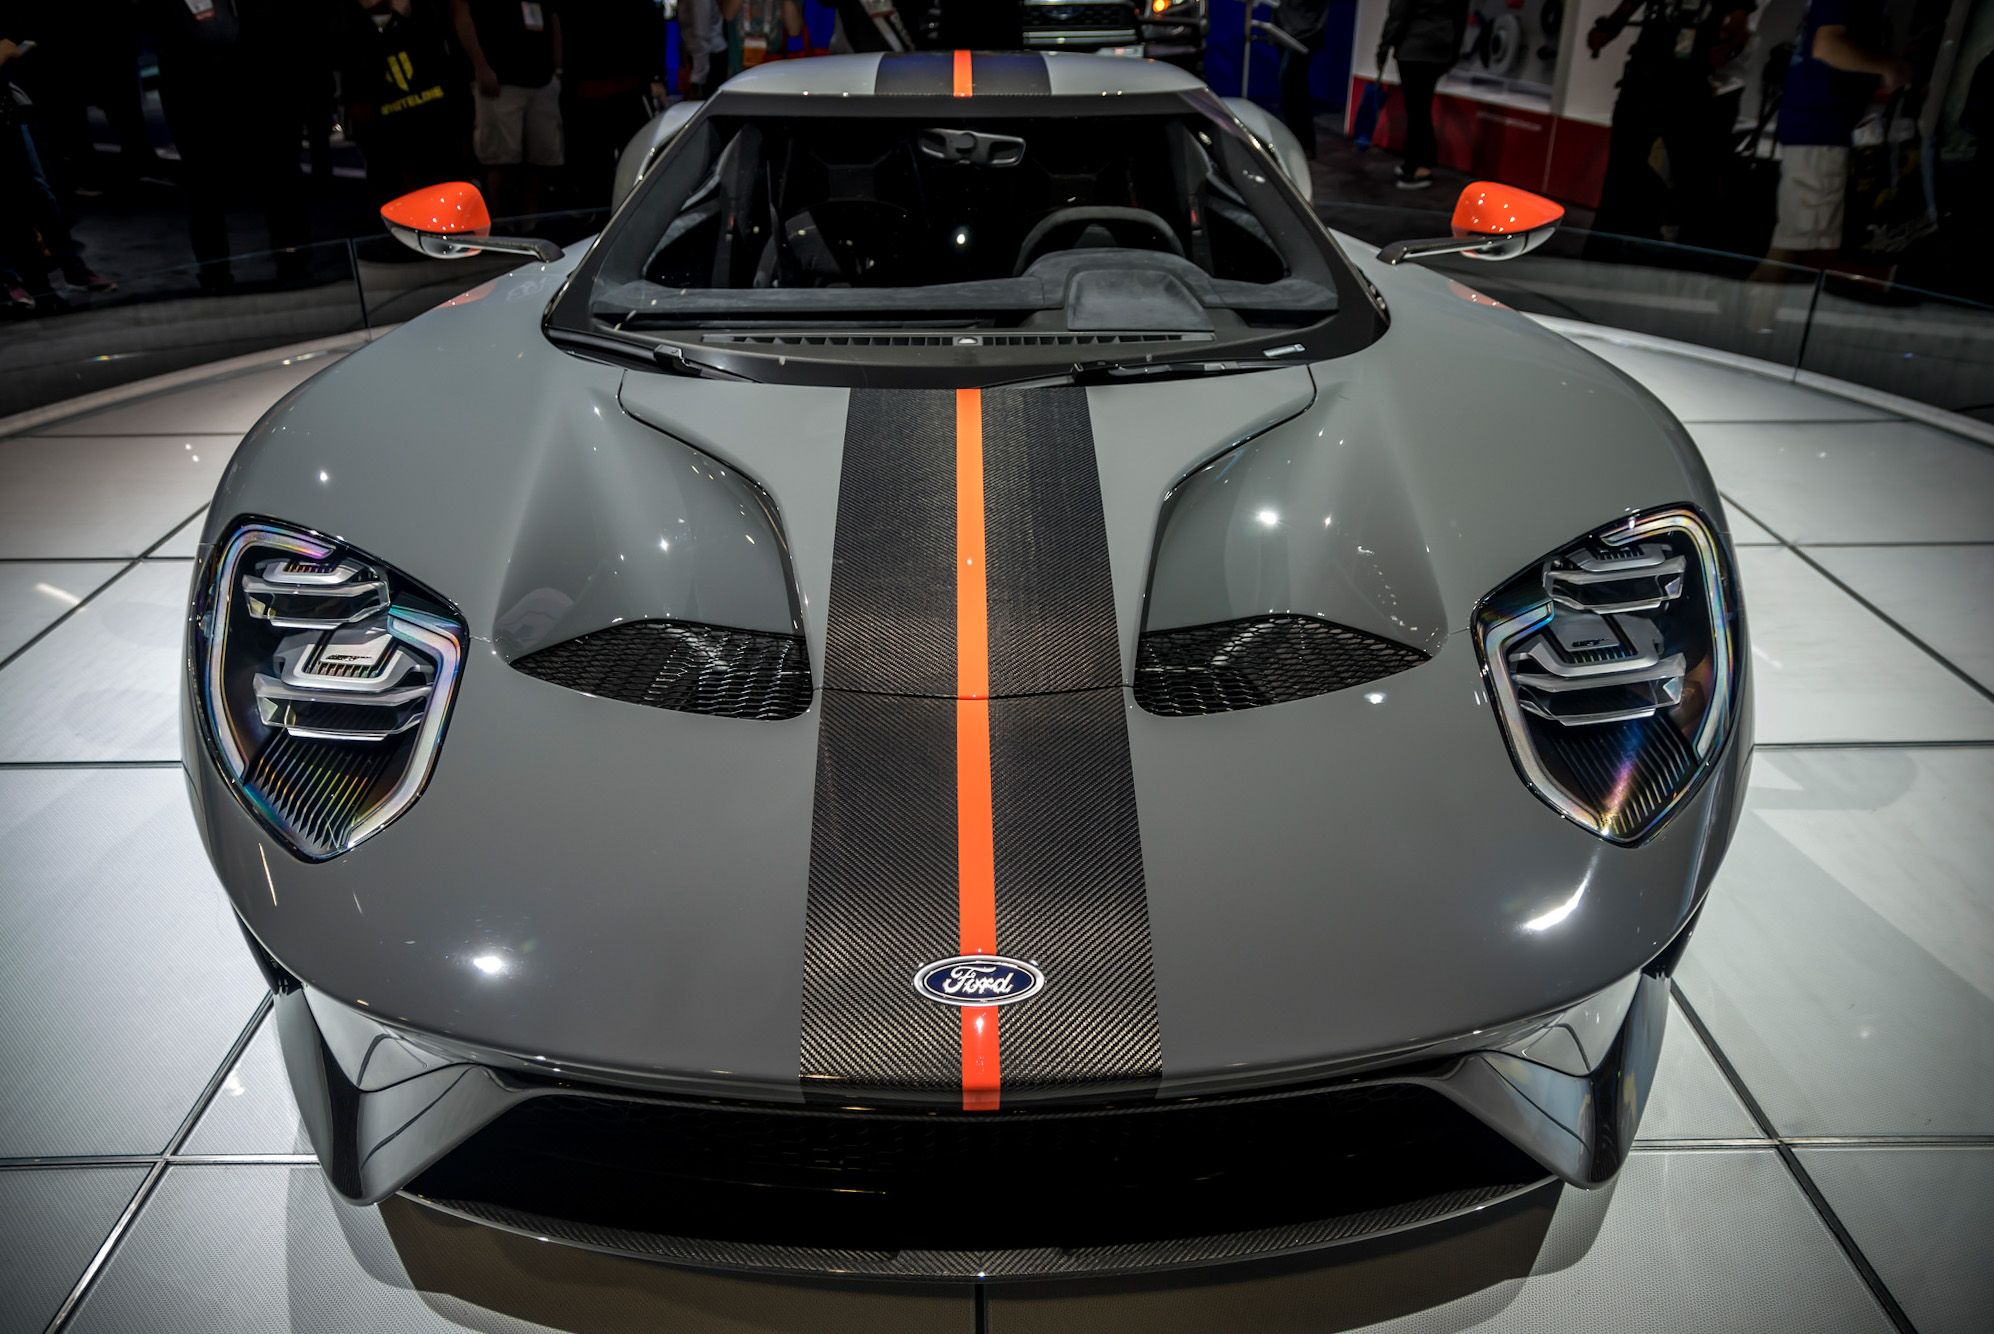 How Do You Feel About The Ford Gt Carbon Series Ford Ford Gt